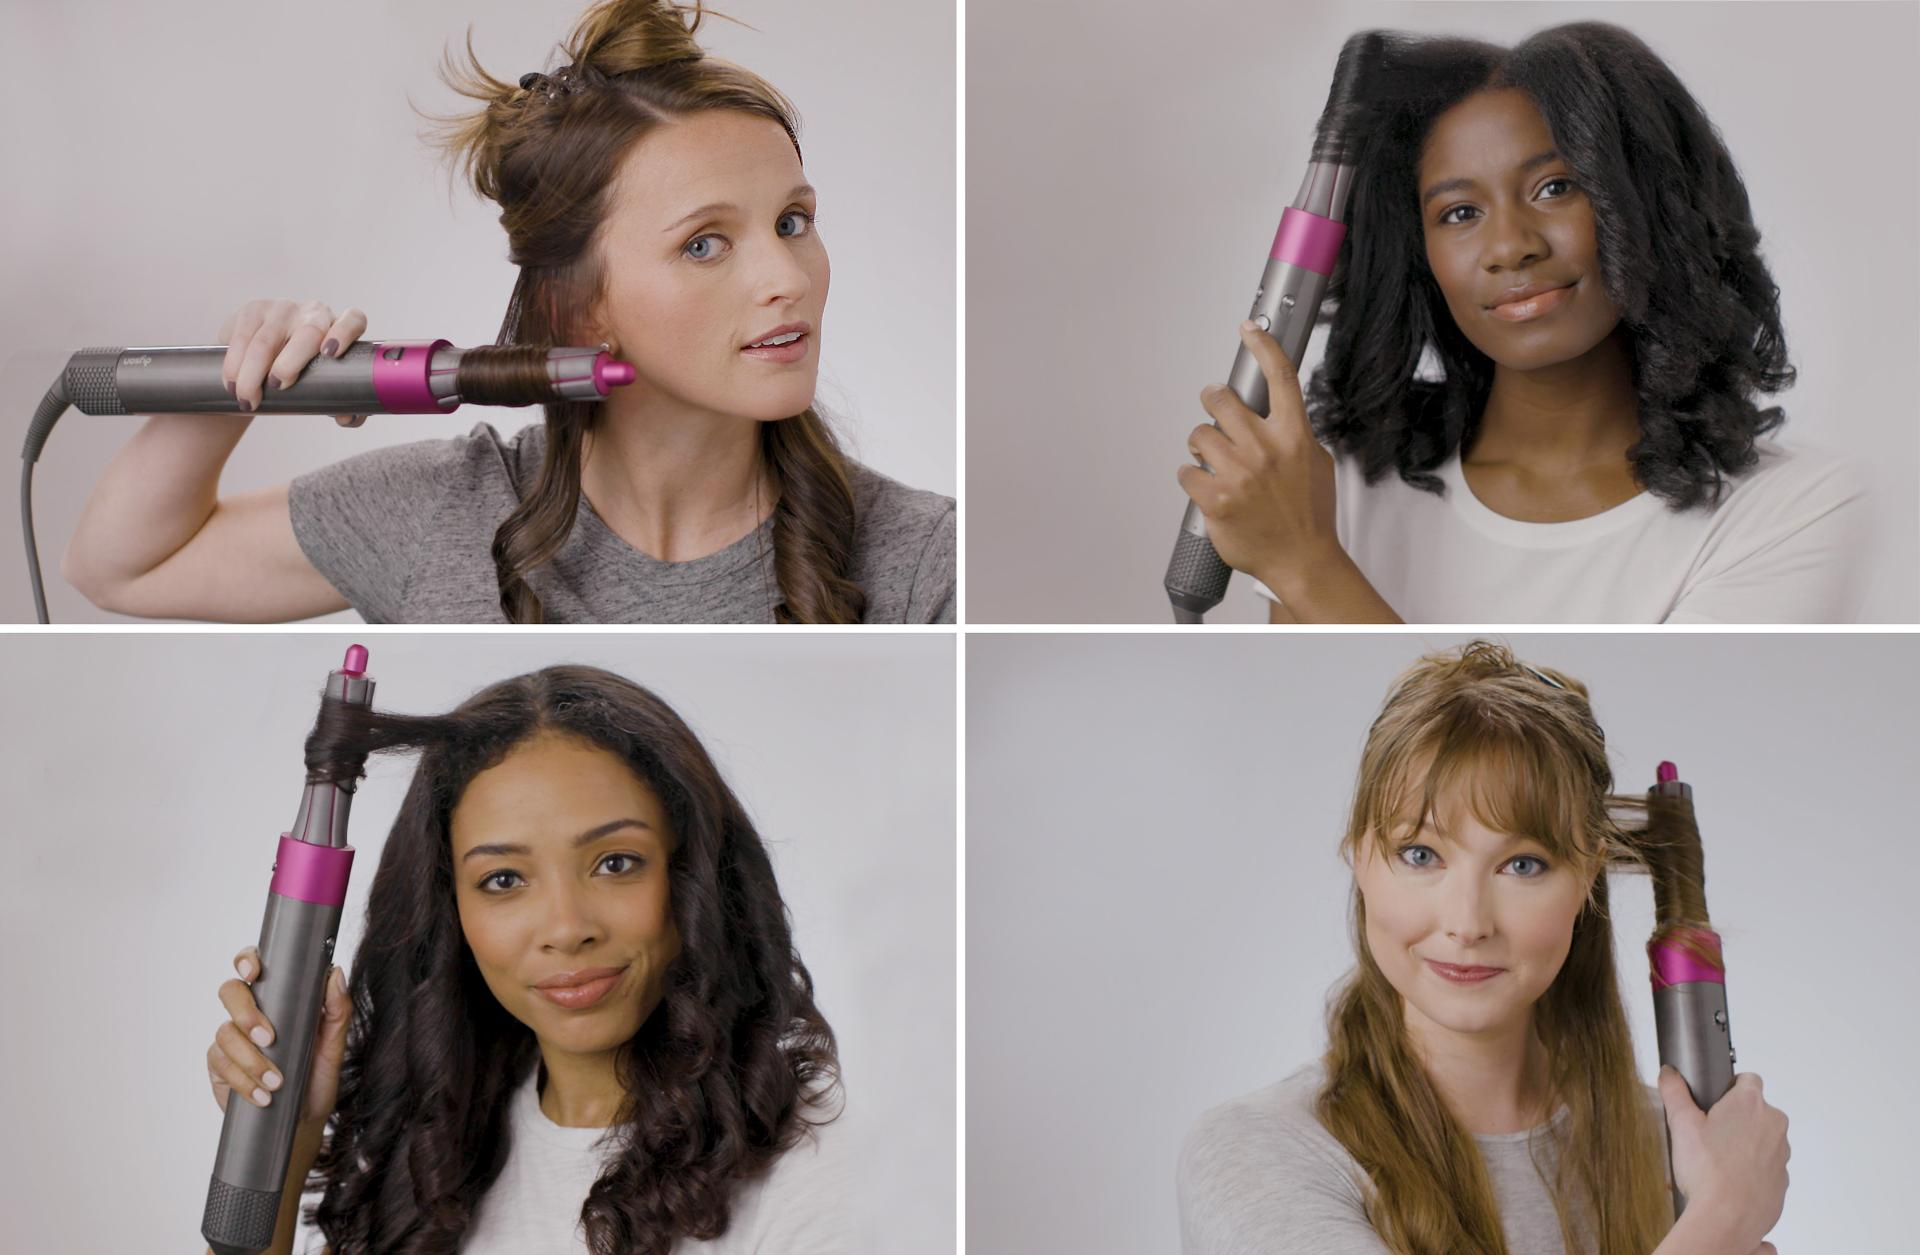 How To Style With Airwrap Dyson Airwrap Hair Styler